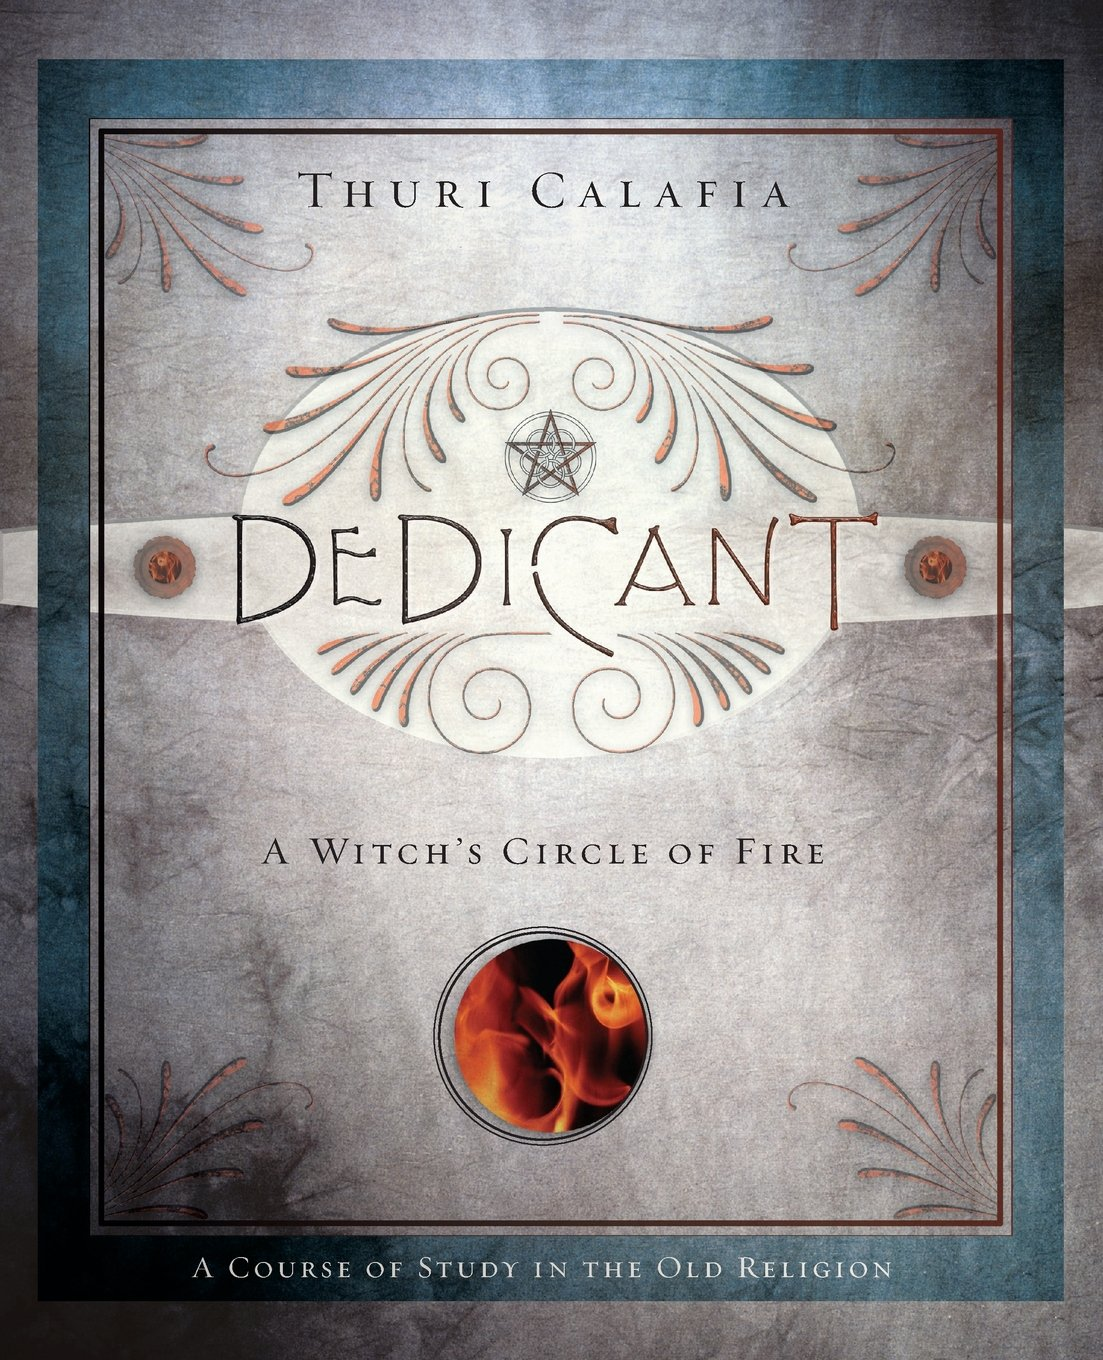 Dedicant: A Witch's Circle of Fire (Course of Study in the